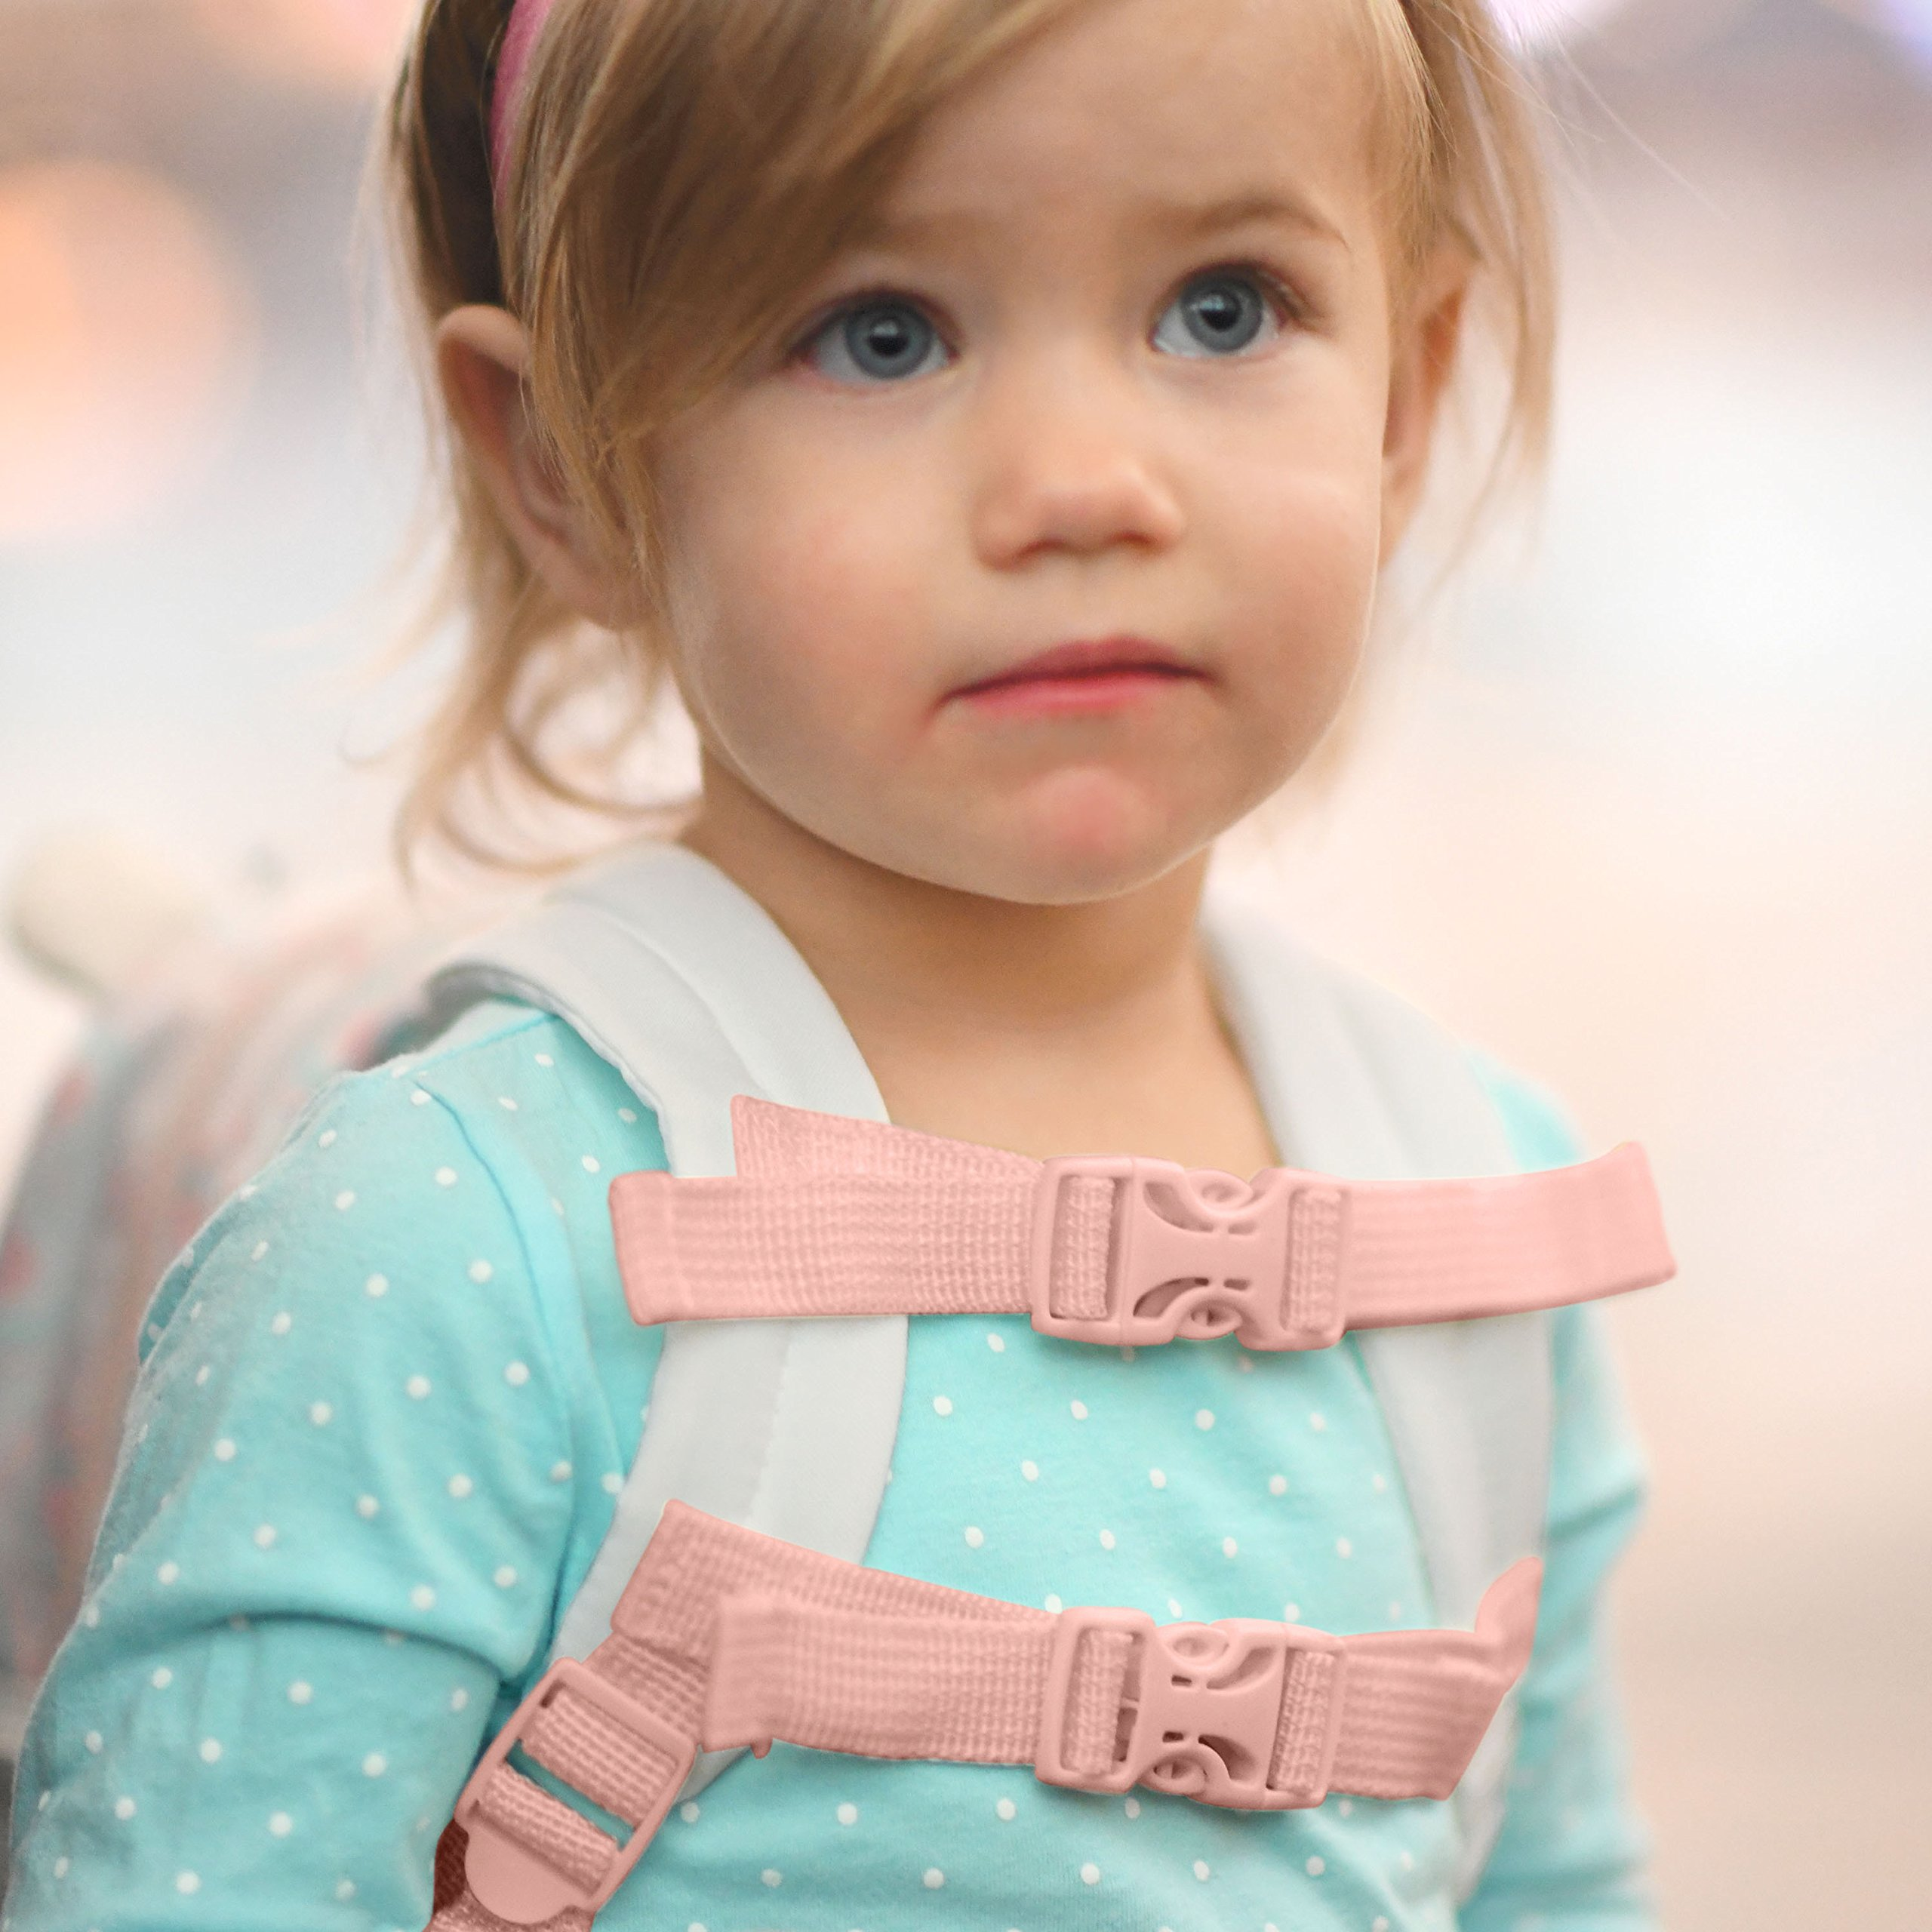 Travel Bug Toddler Safety Unicorn Backpack Harness with Removable Tether, Pink/White by Travel Bug (Image #4)